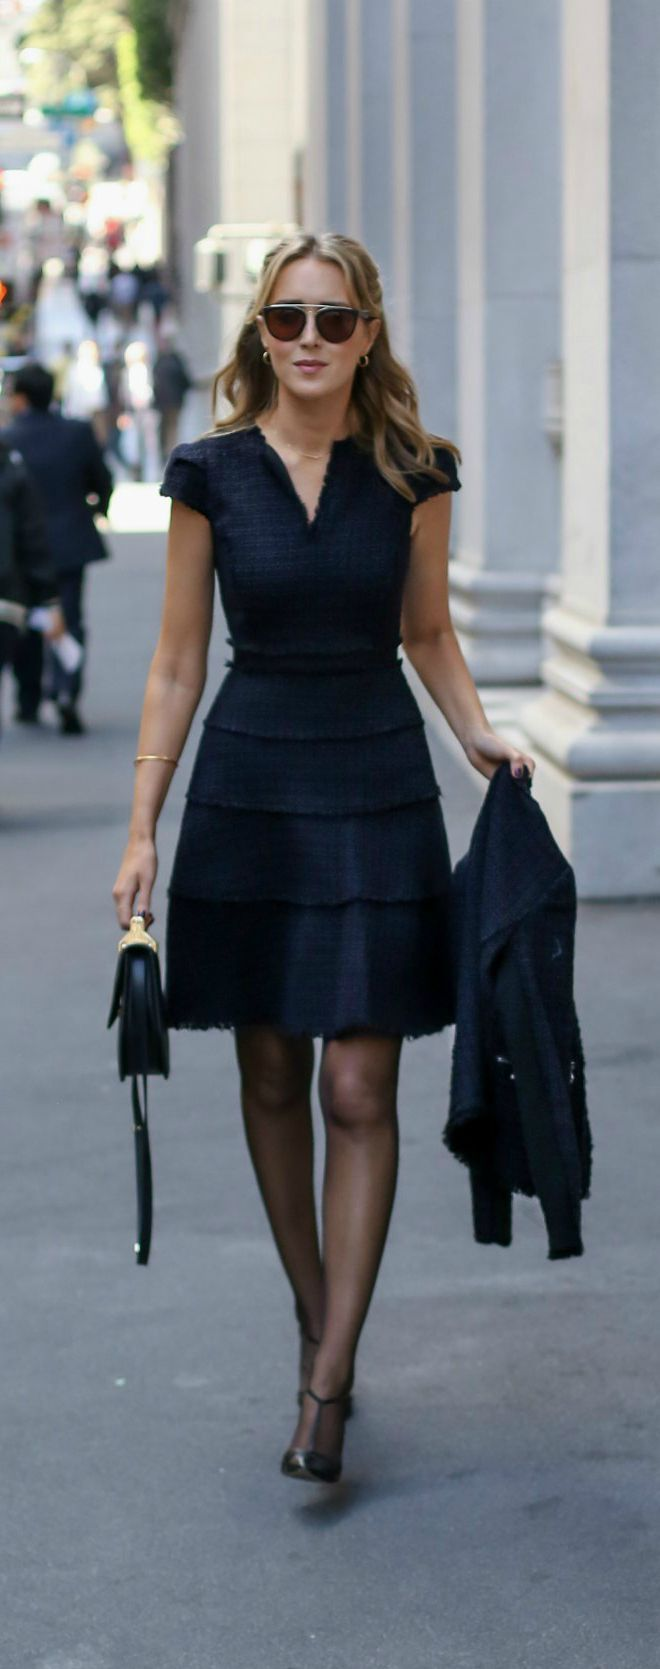 Black dress navy blazer - Black And Navy Tweed Fit And Flare Short Sleeve Dress With Coordinating Suit Jacket Perfect For